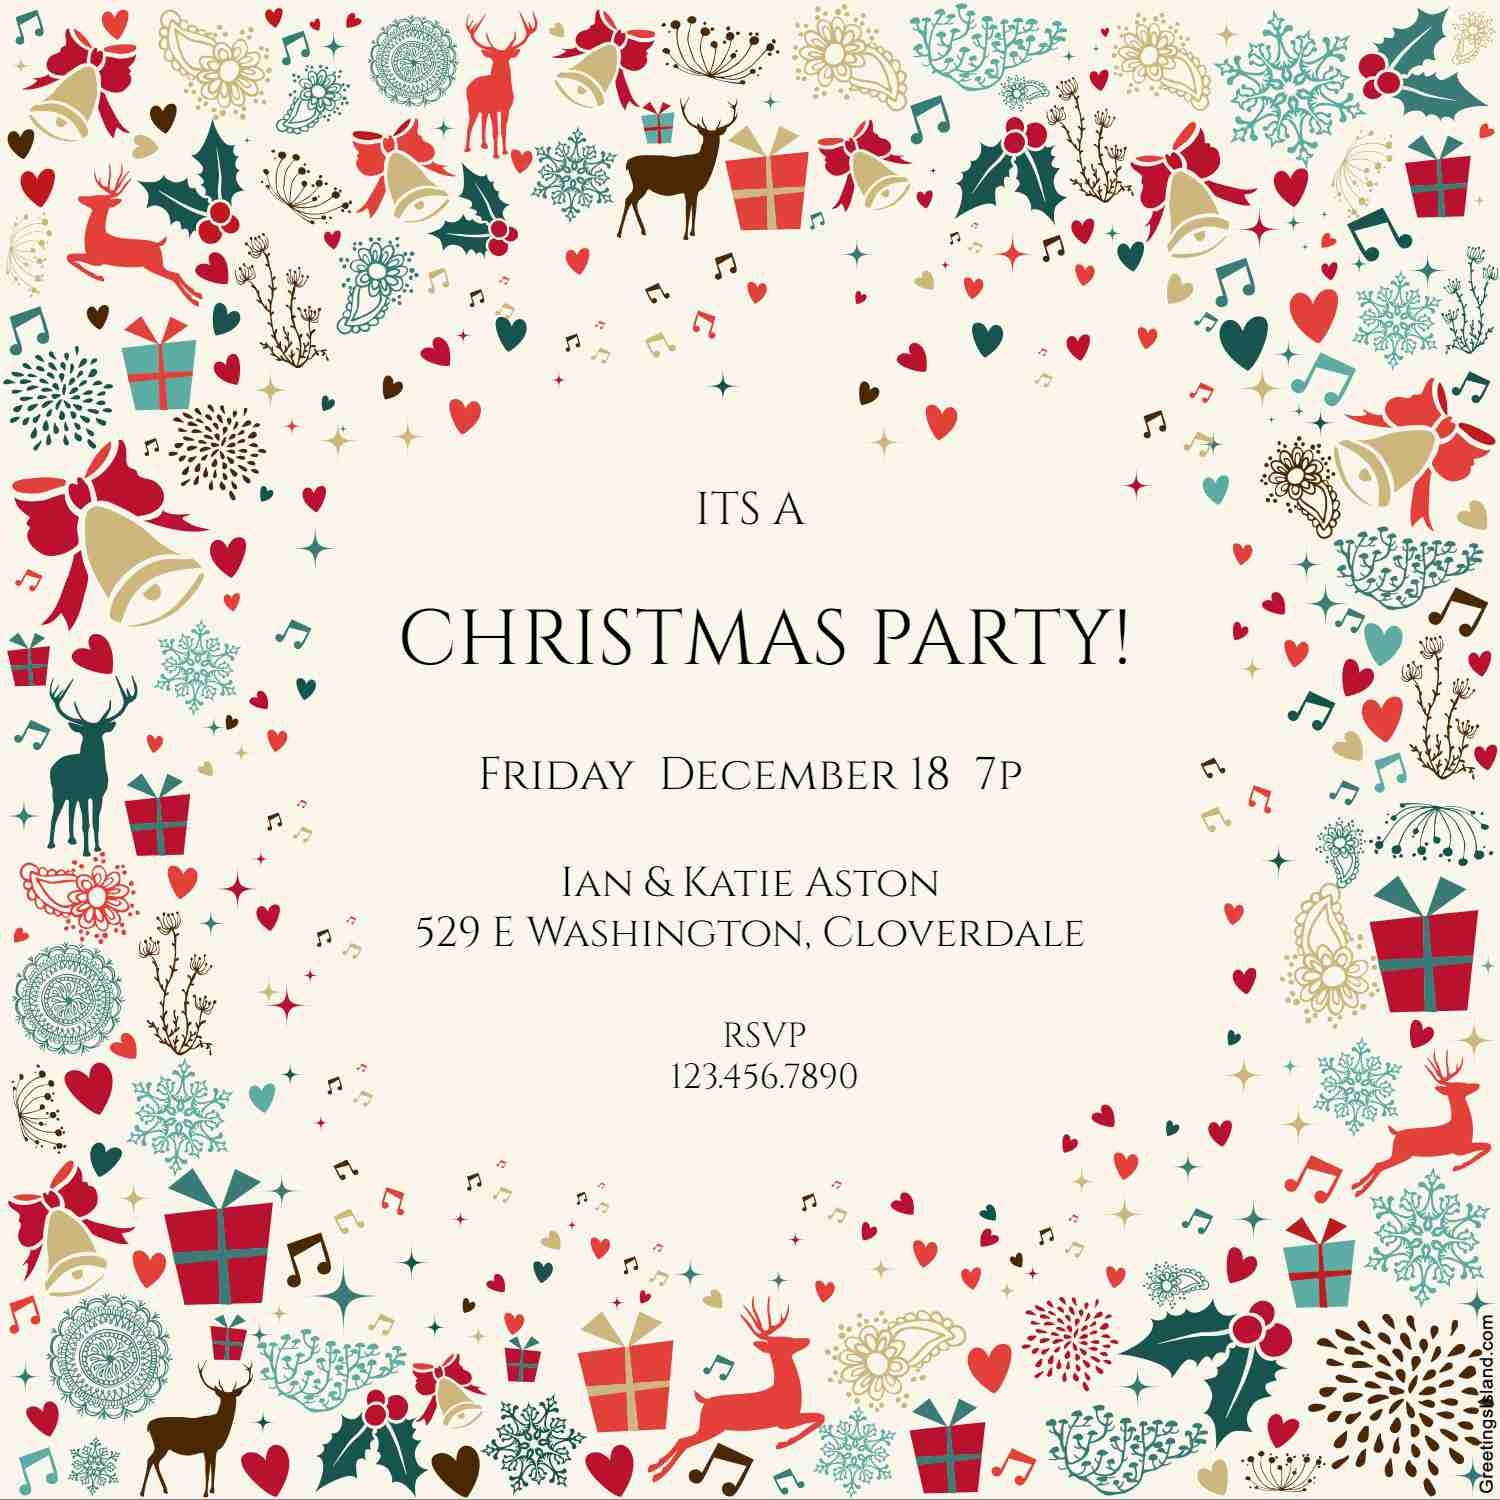 10 Free Christmas Party Invitations That You Can Print - Free Printable Personalized Christmas Invitations